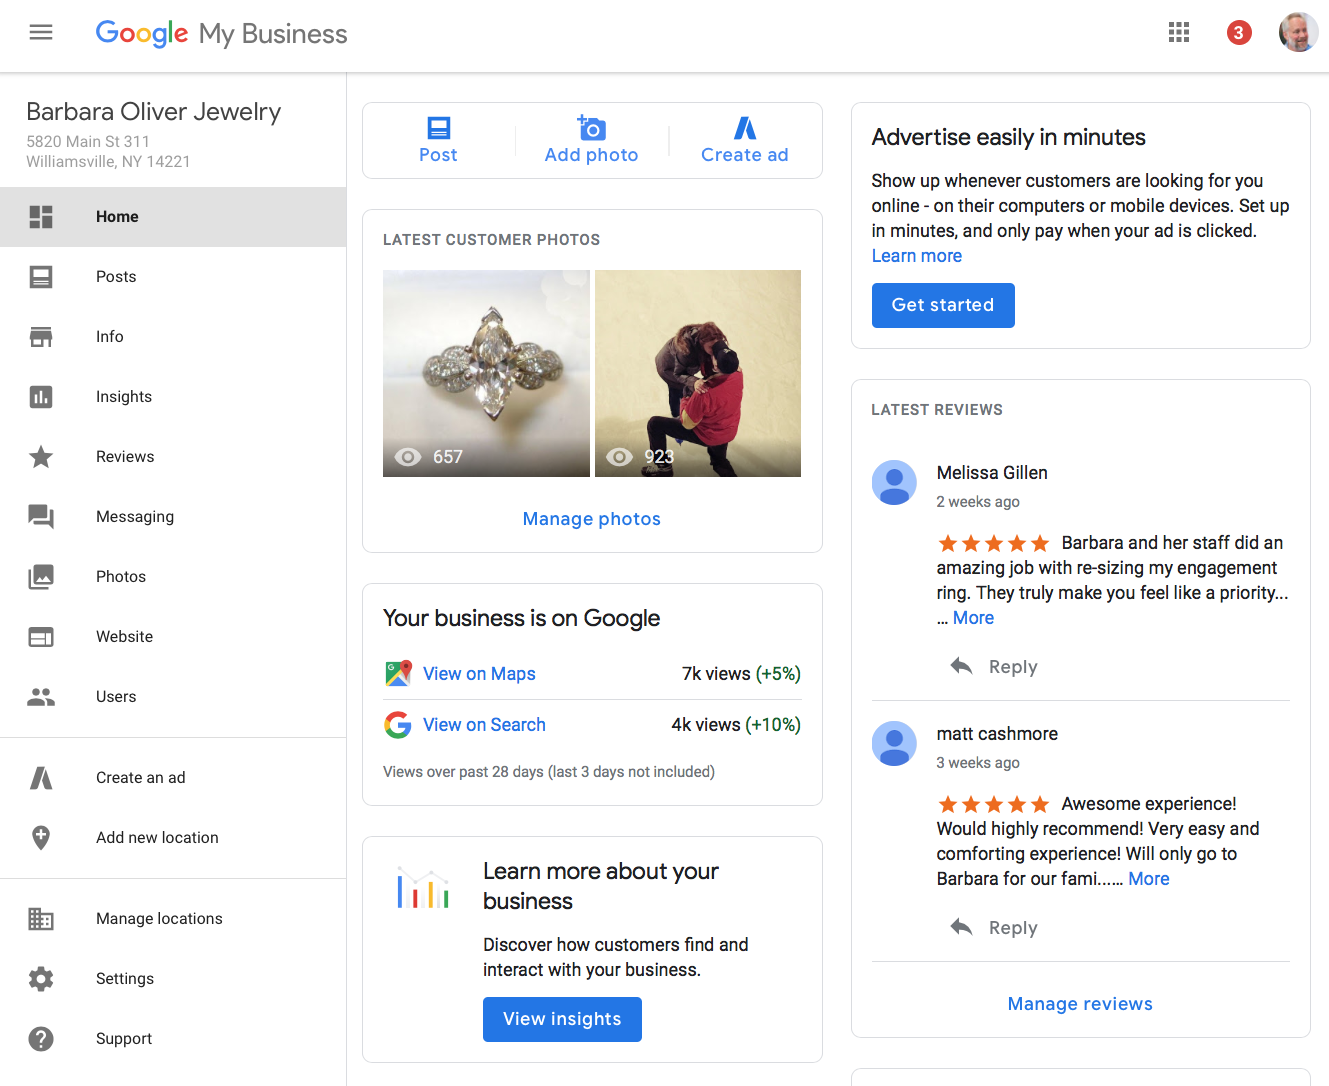 Google Pushes Full Release of New Location Dashboard